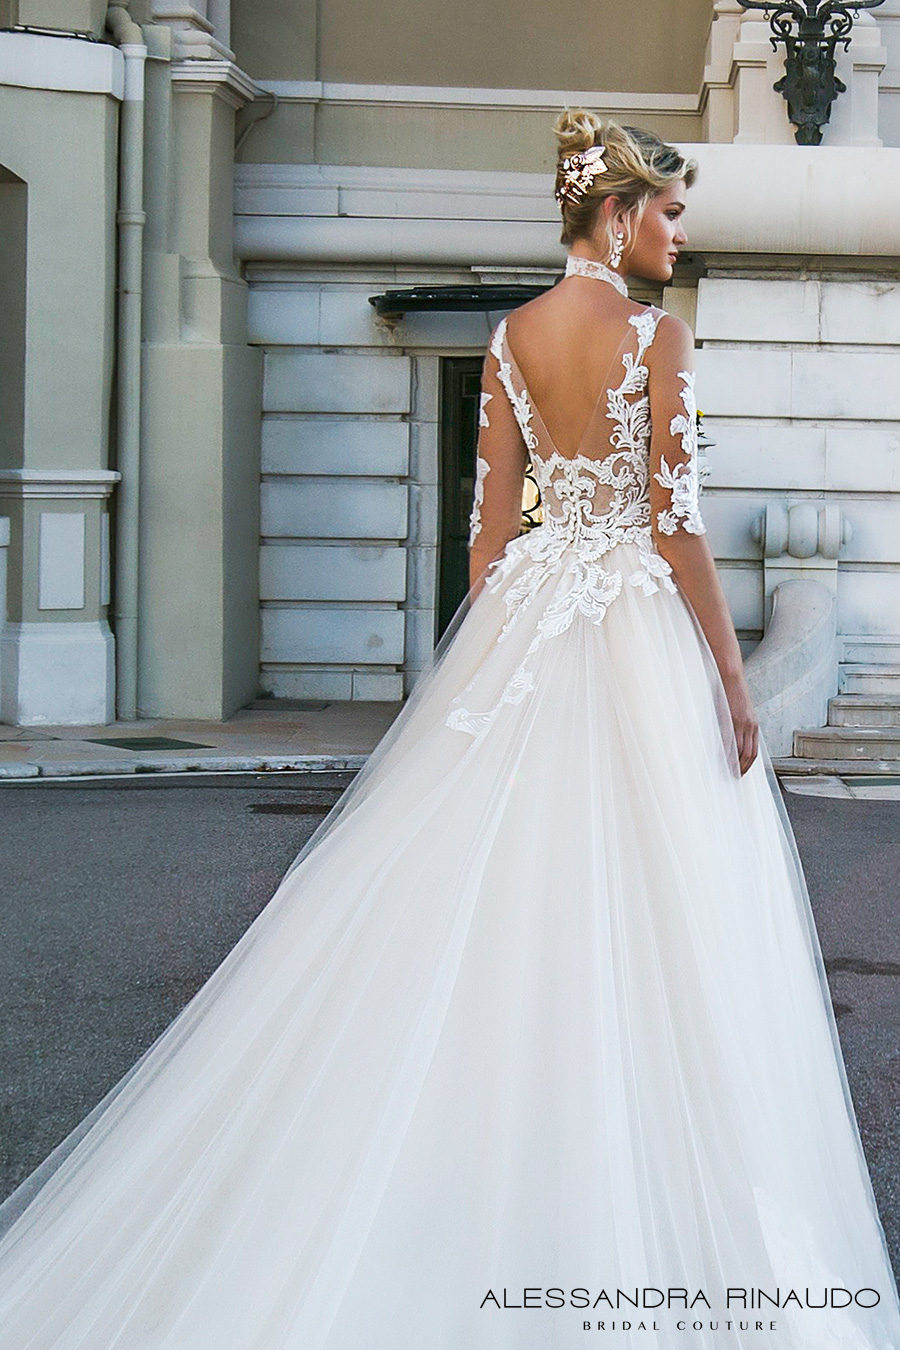 alessandra rinaudo 2017 bridal half sleeves scoop neckline heavily embellished bodice princess romantic a line wedding dress v back long royal train (benedetta) zbv